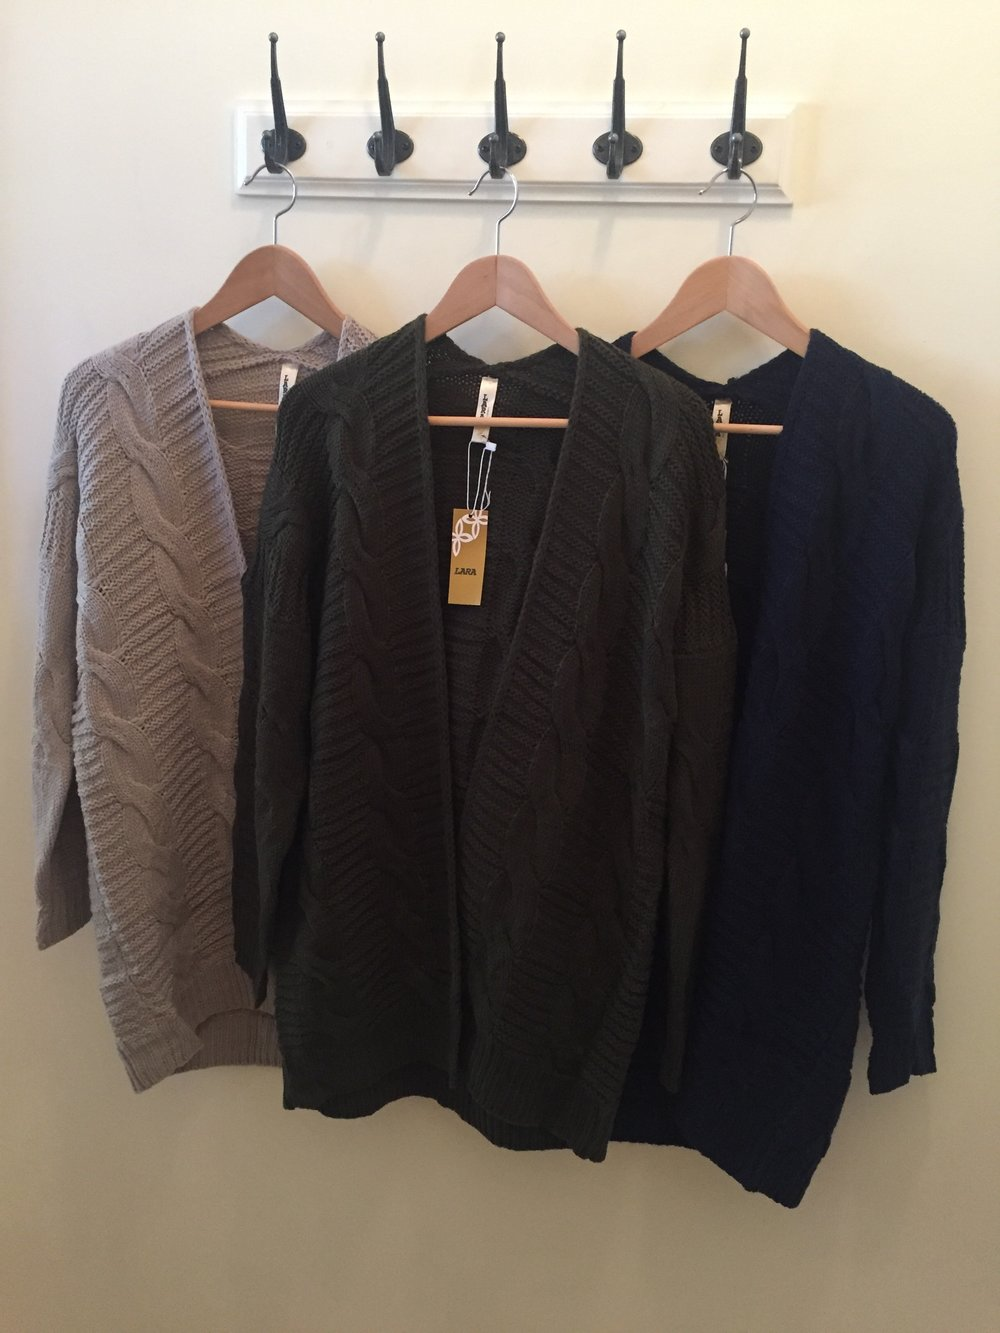 Chunky Cable Knit Sweaters, $45